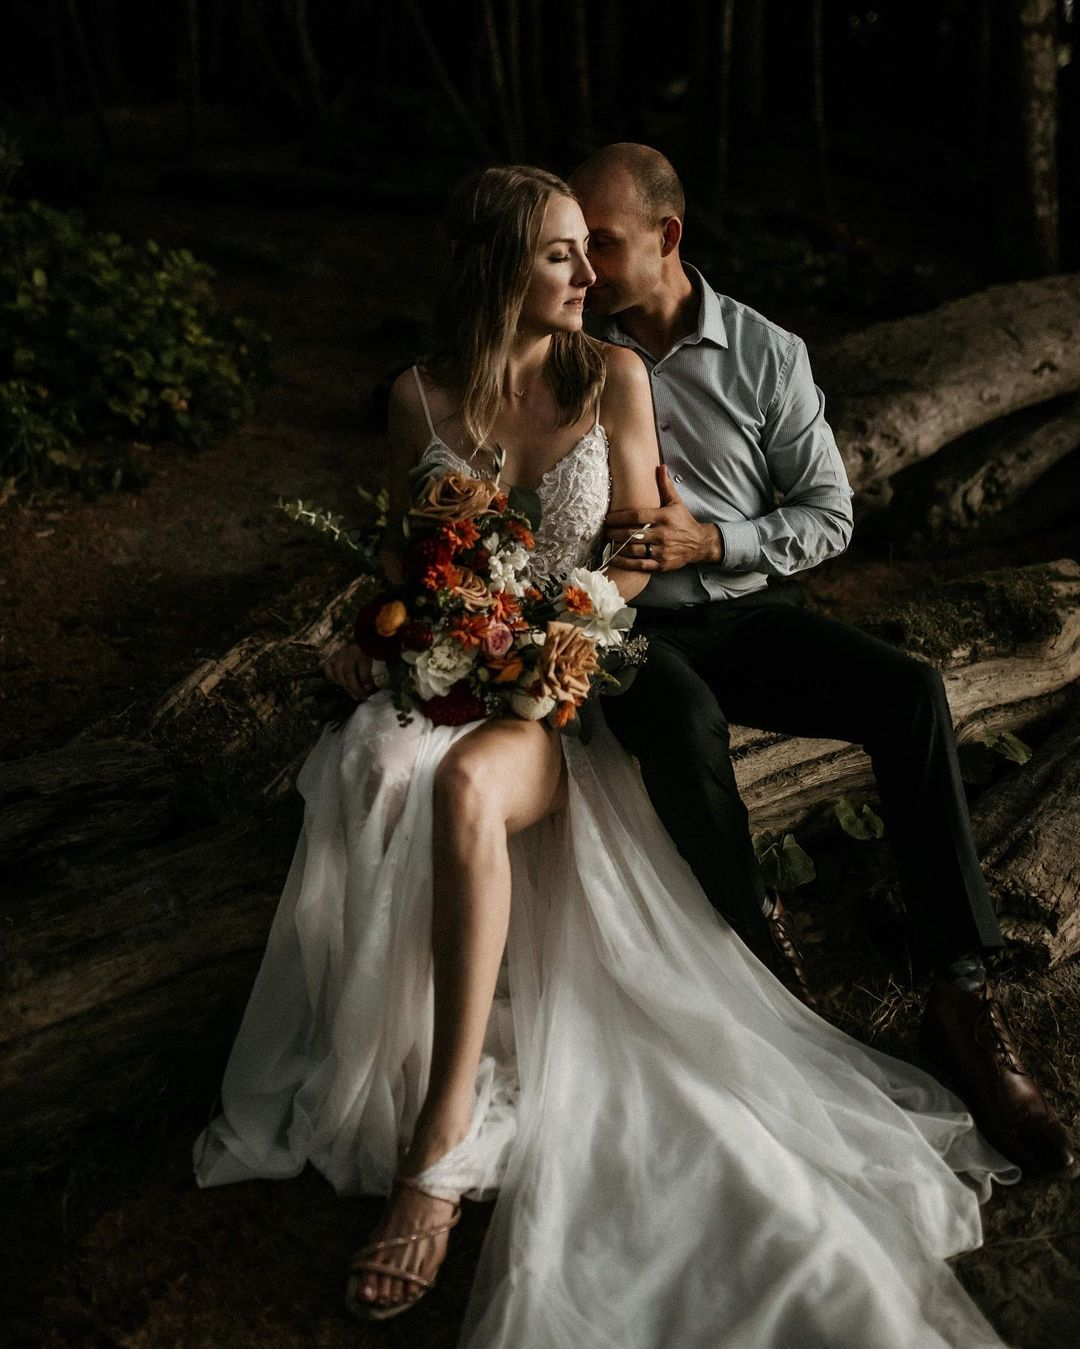 A bride and groom posing while sitting on a log